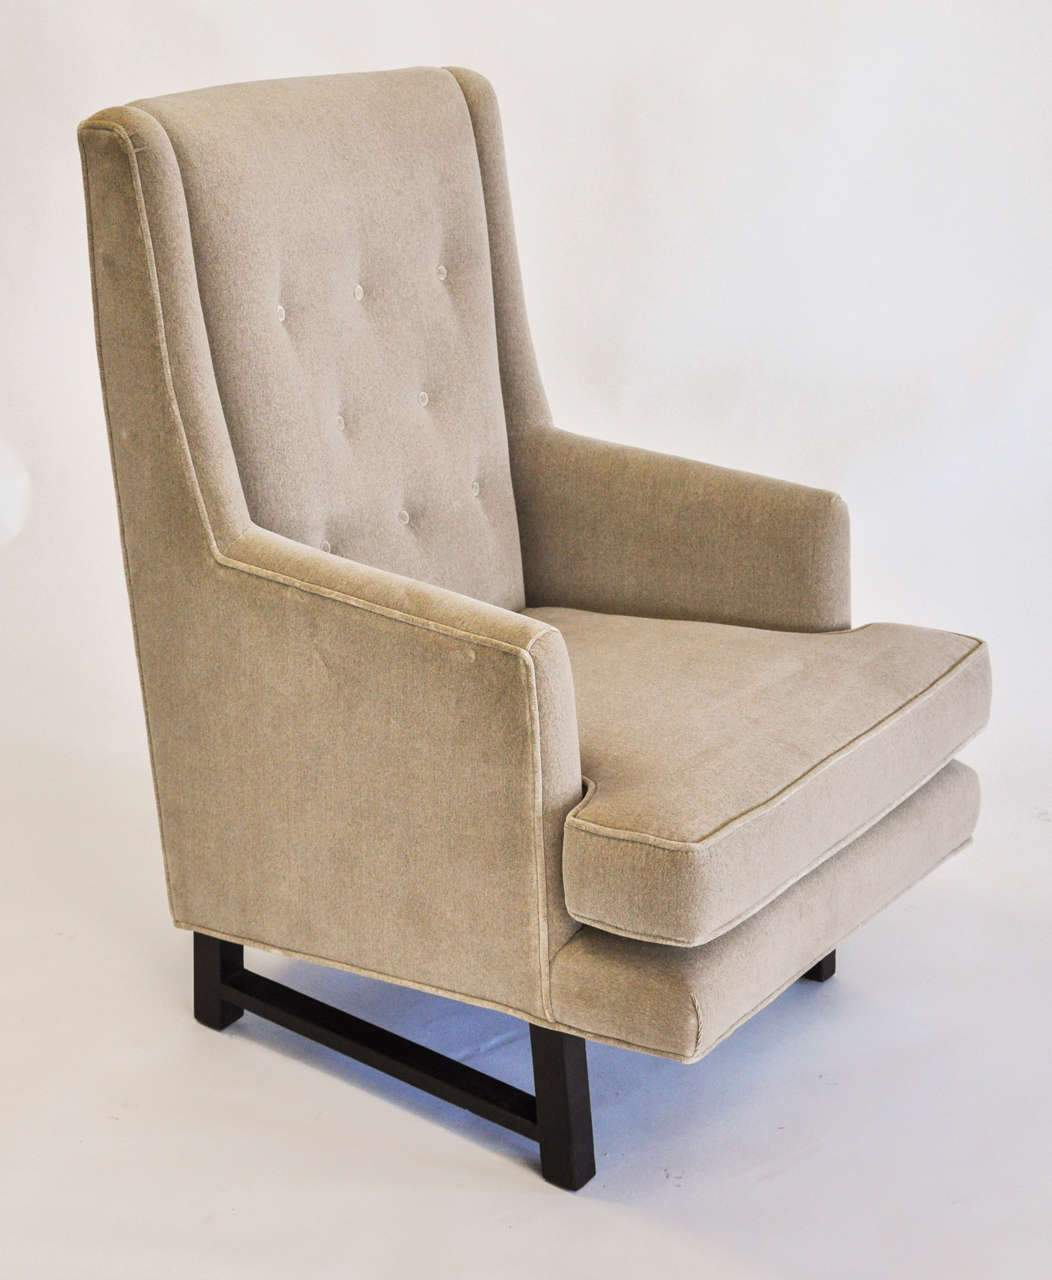 Armchair Designed by Edward Wormley for Dunbar 1950s